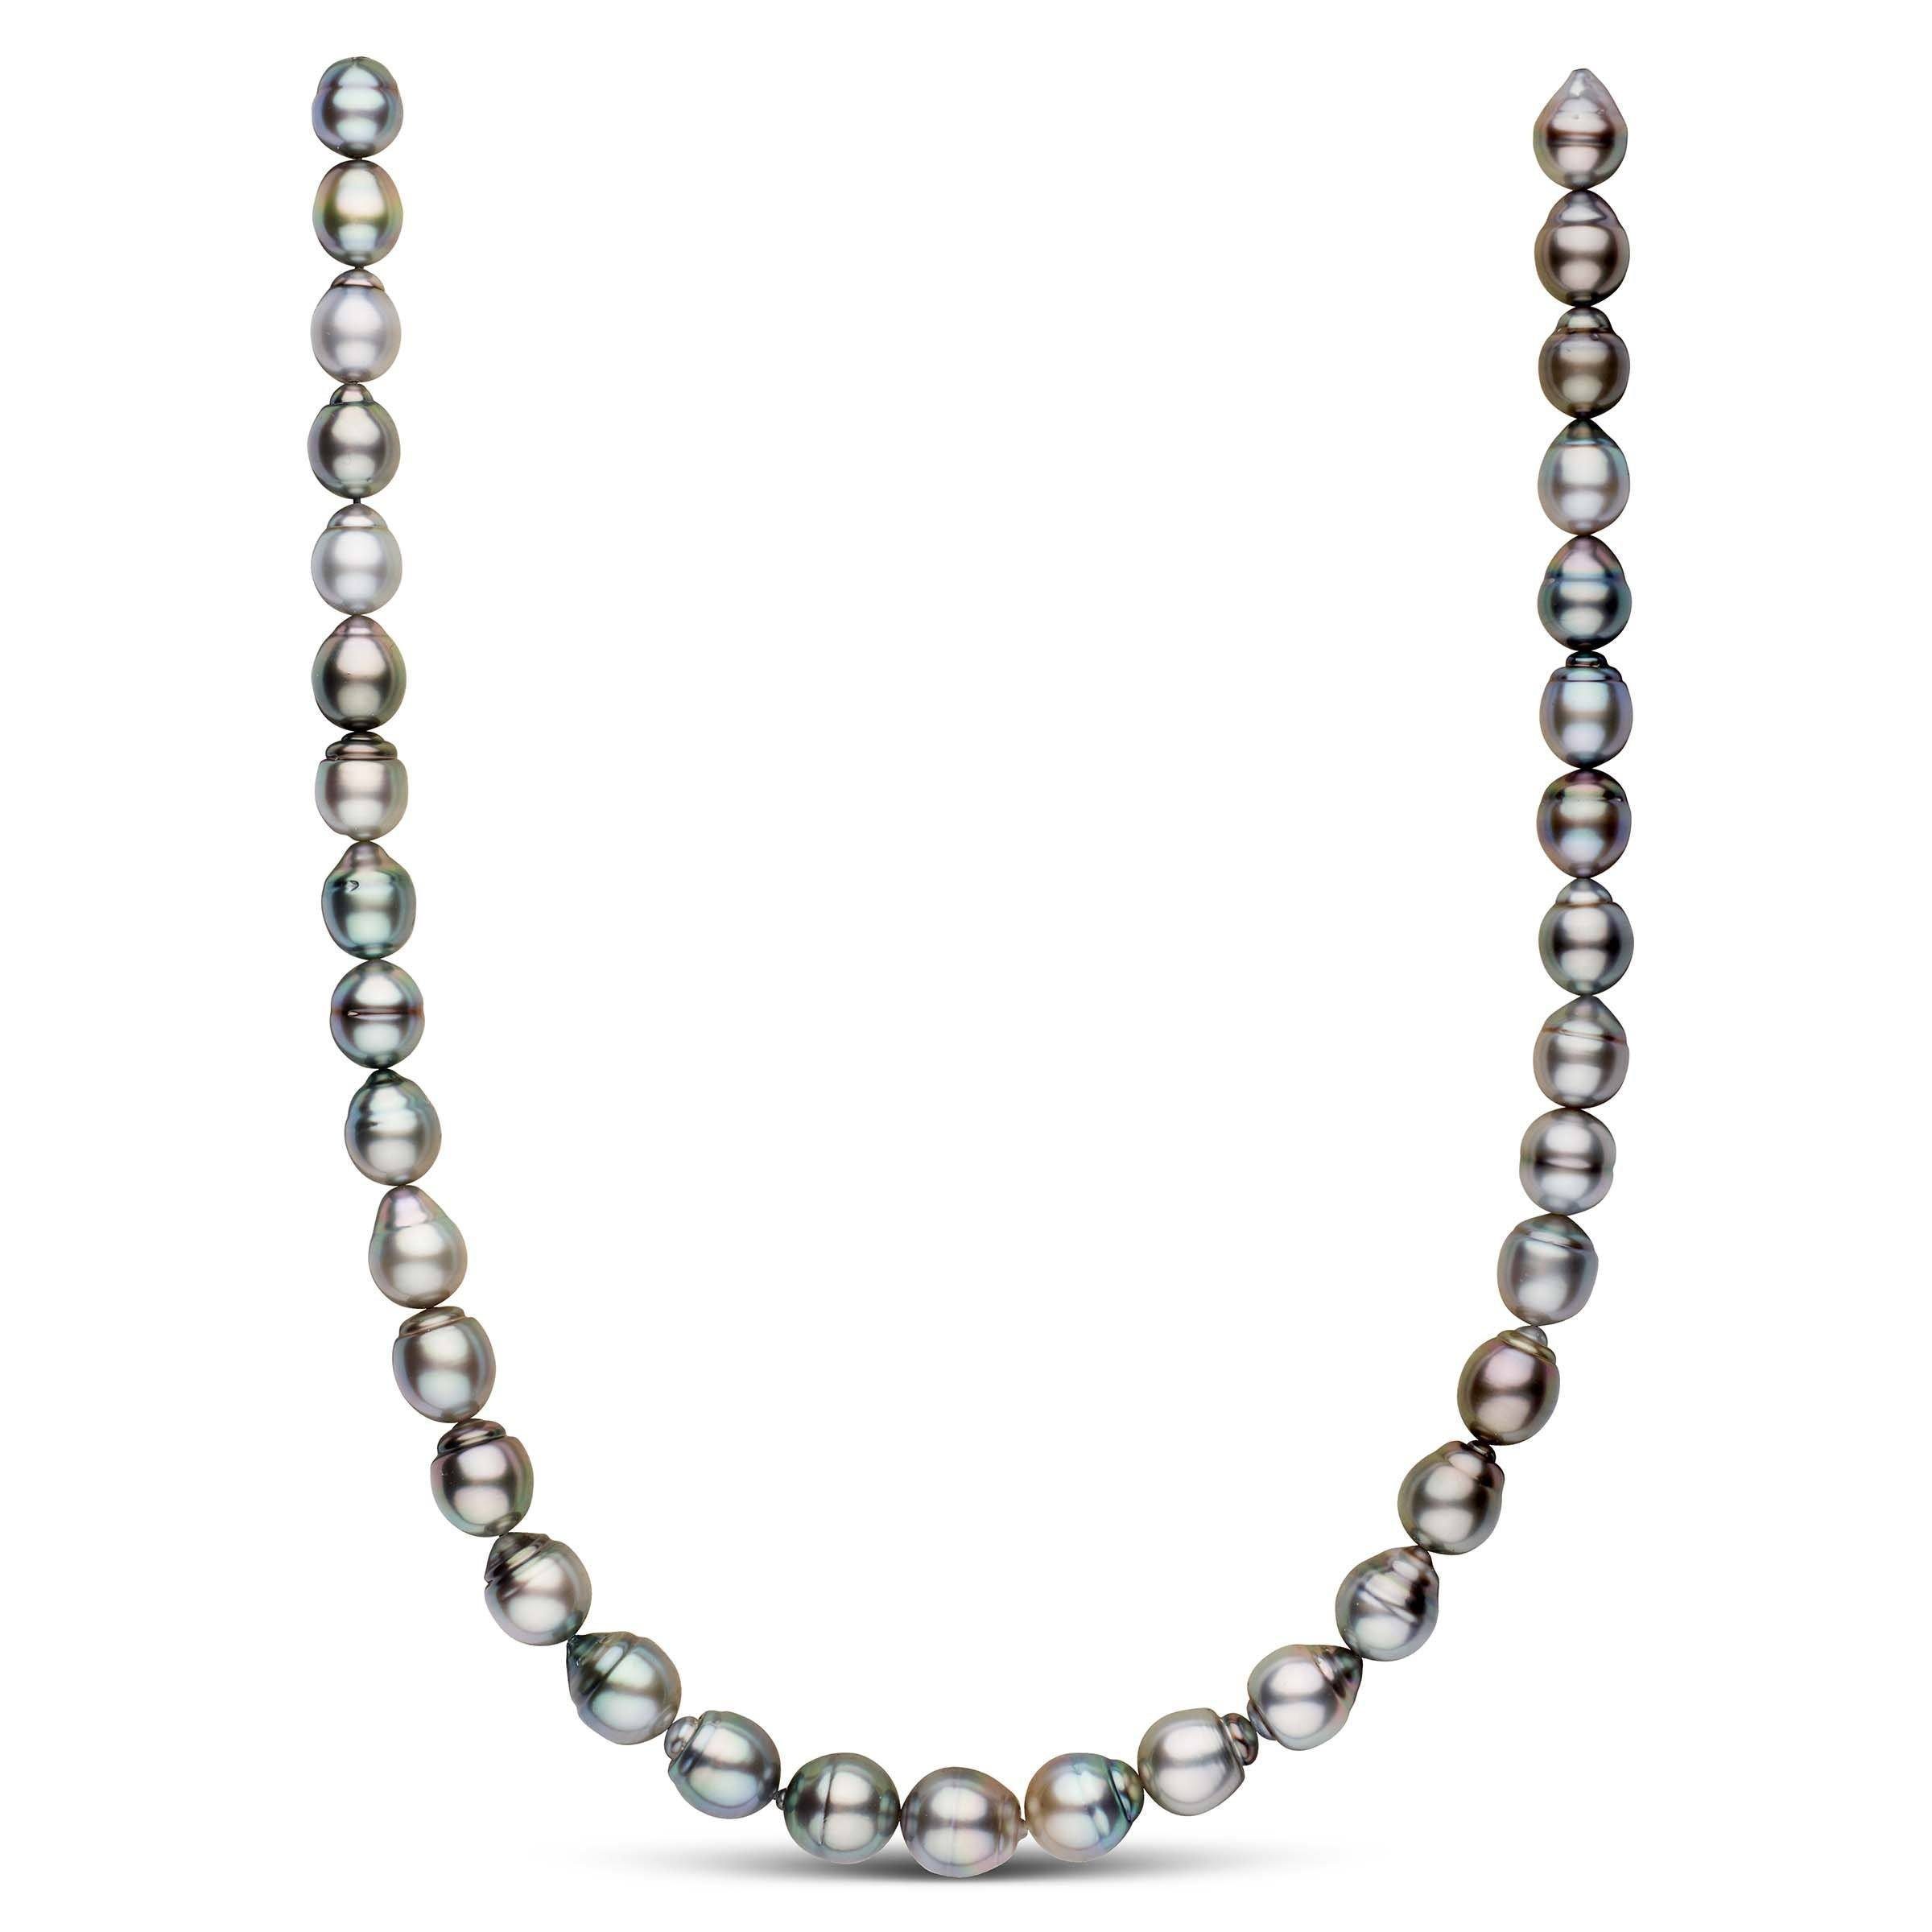 9.1-11.0 mm AAA Baroque Tahitian Pearl Necklace